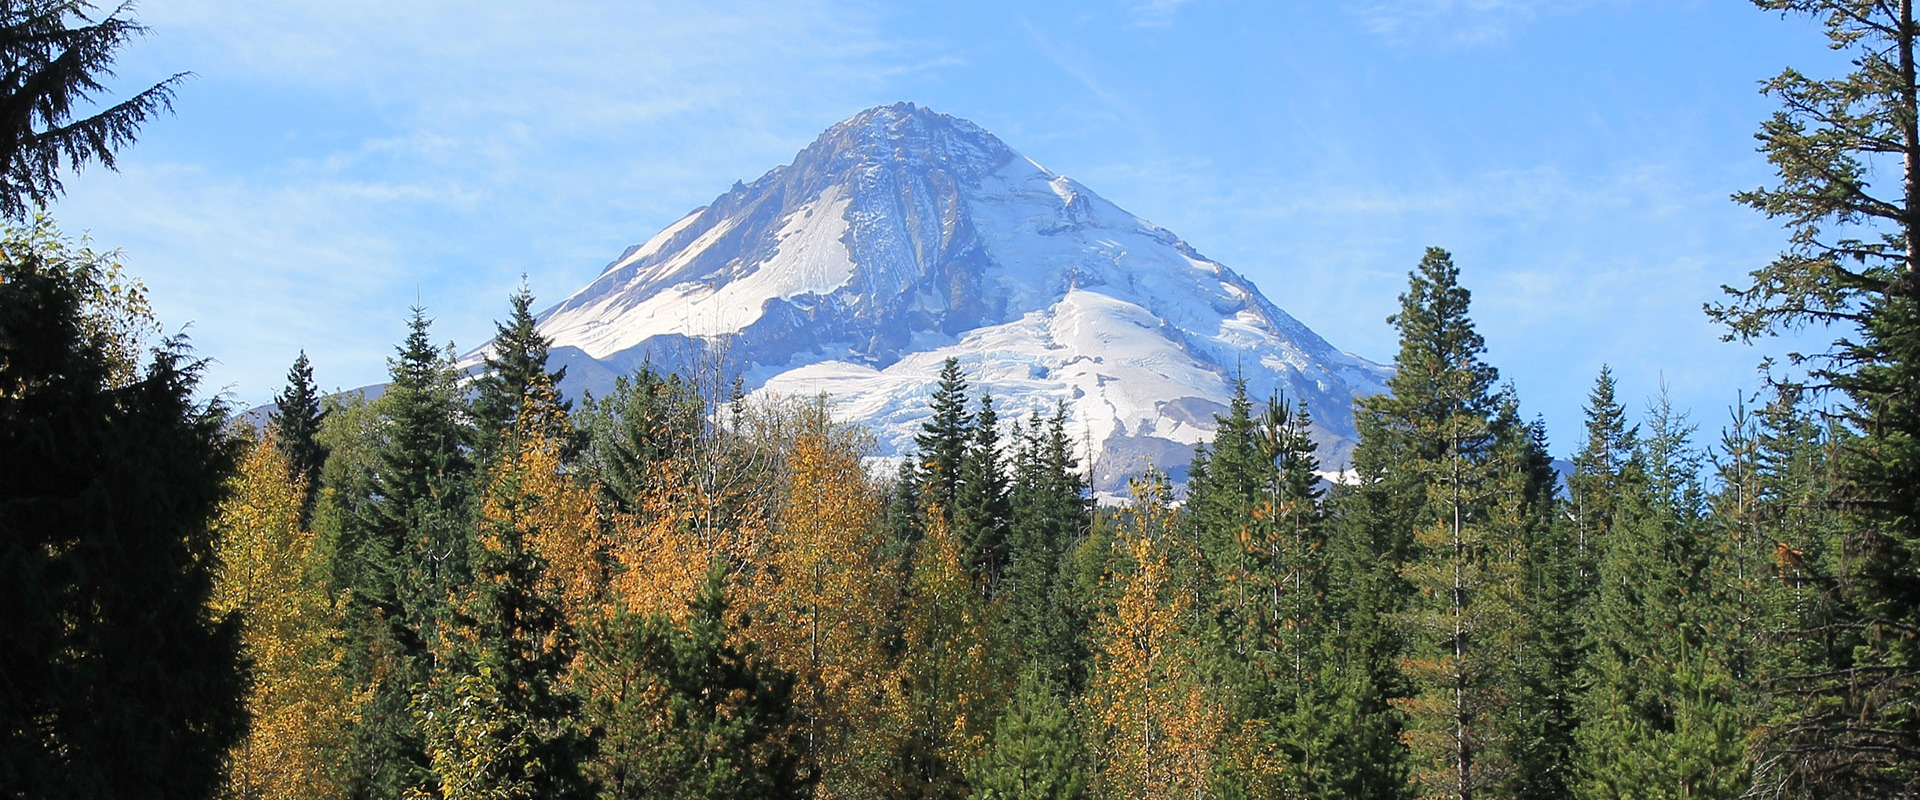 Mt Hood Outdoors